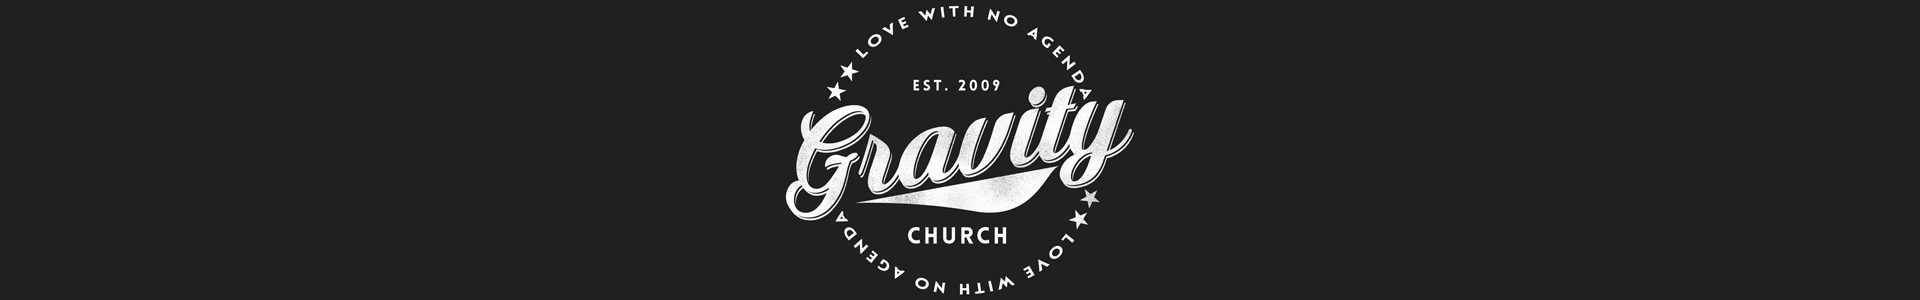 Gravity Church